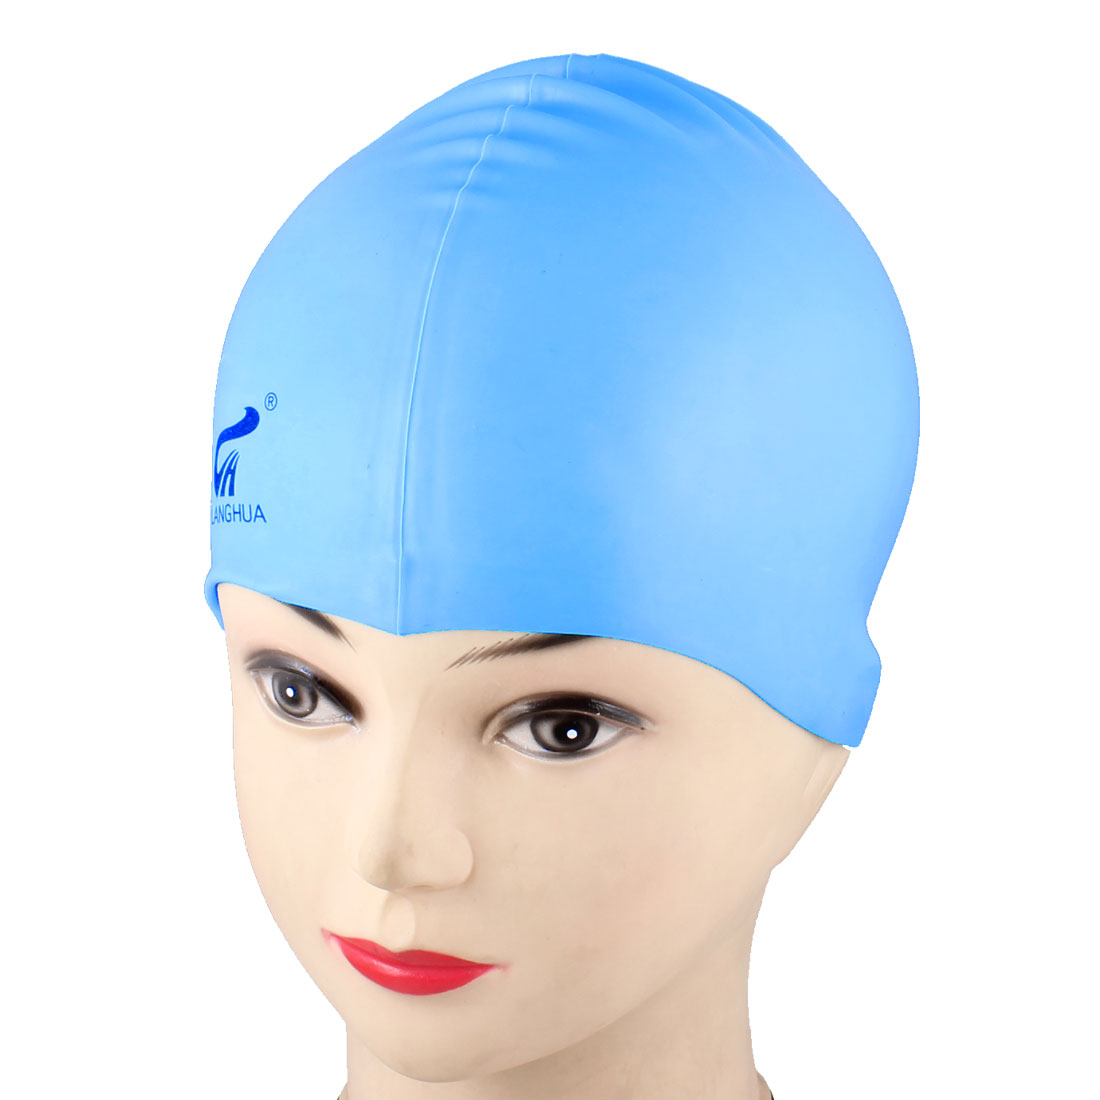 Swimming Swim Sports Dome Shaped Stretchy Hat Cap Light Blue for Adults